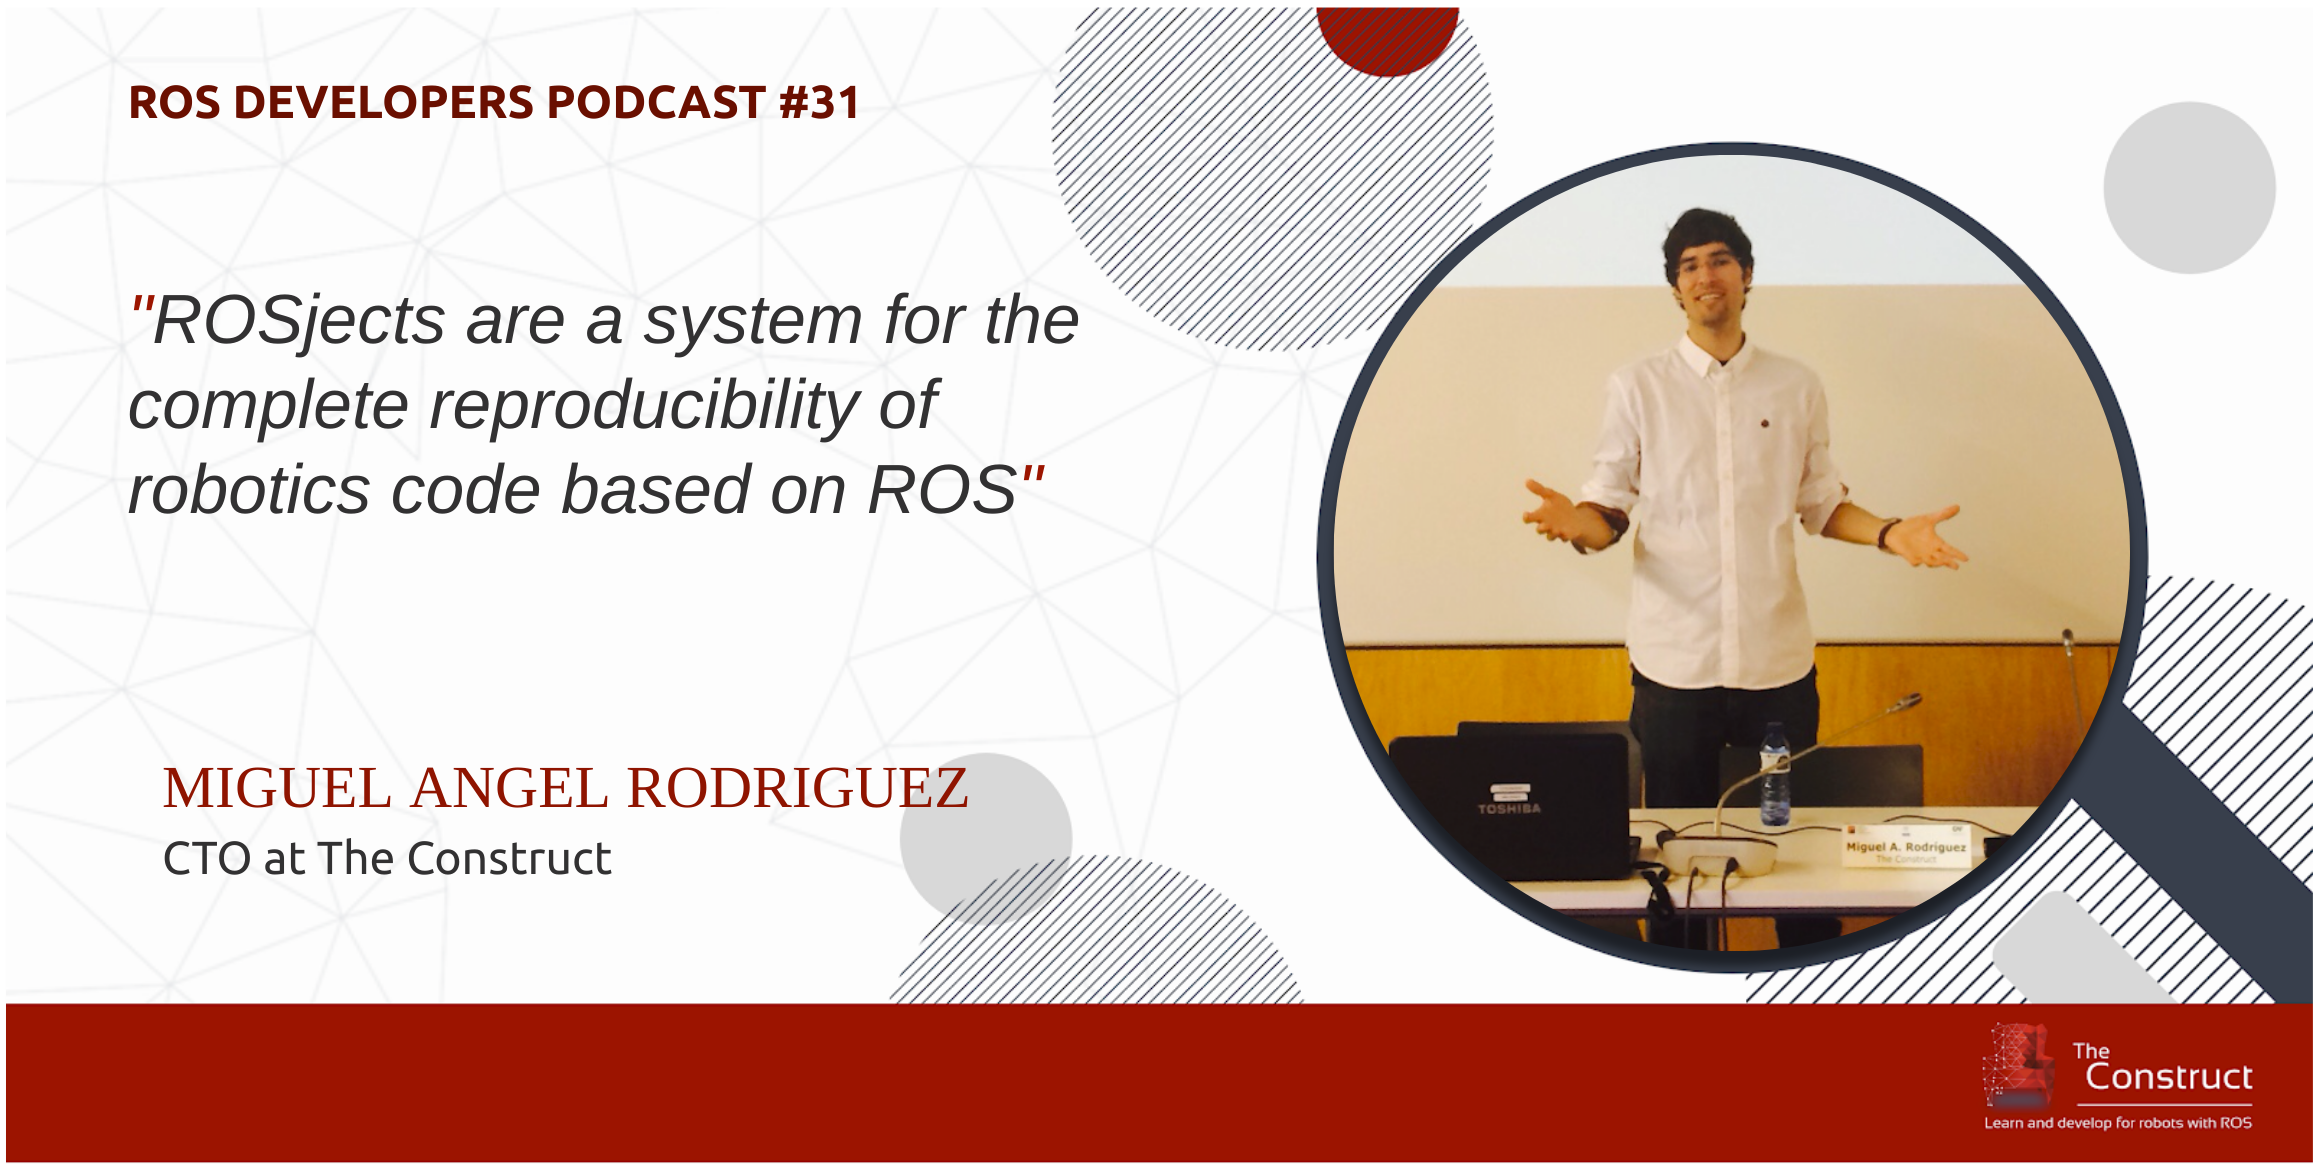 Miguel Angel Rodriguez ROSjects ROS Developers Podcast